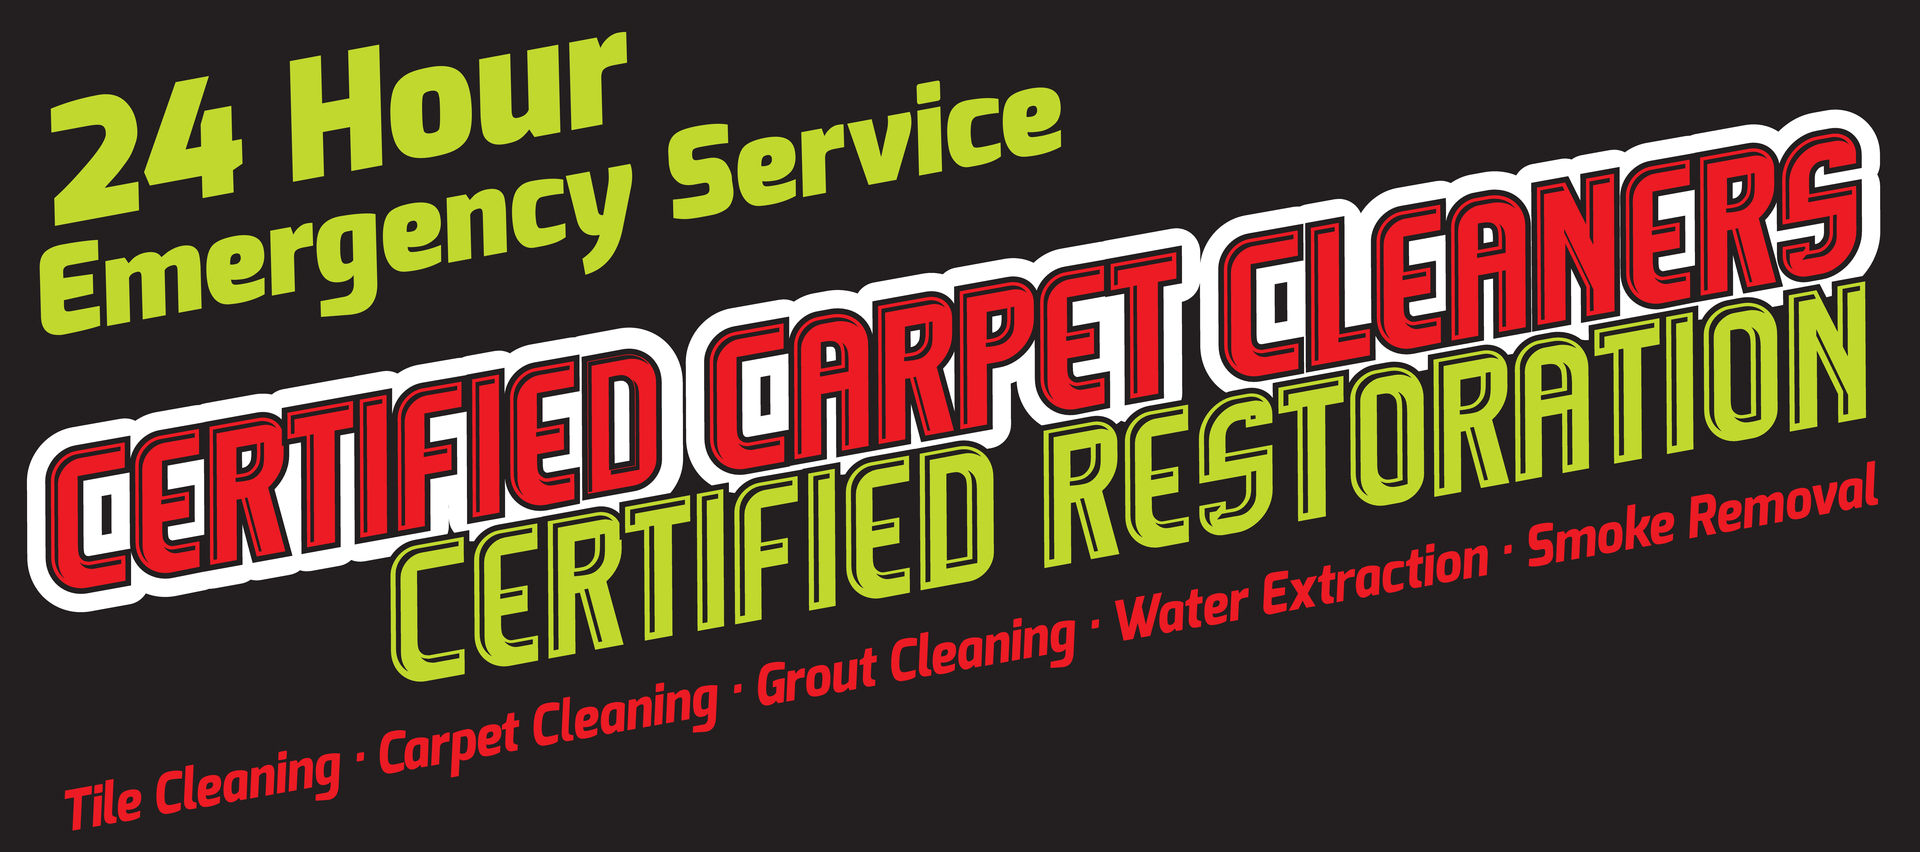 Top Steamer Carpet Cleaning In Atlanta Ga